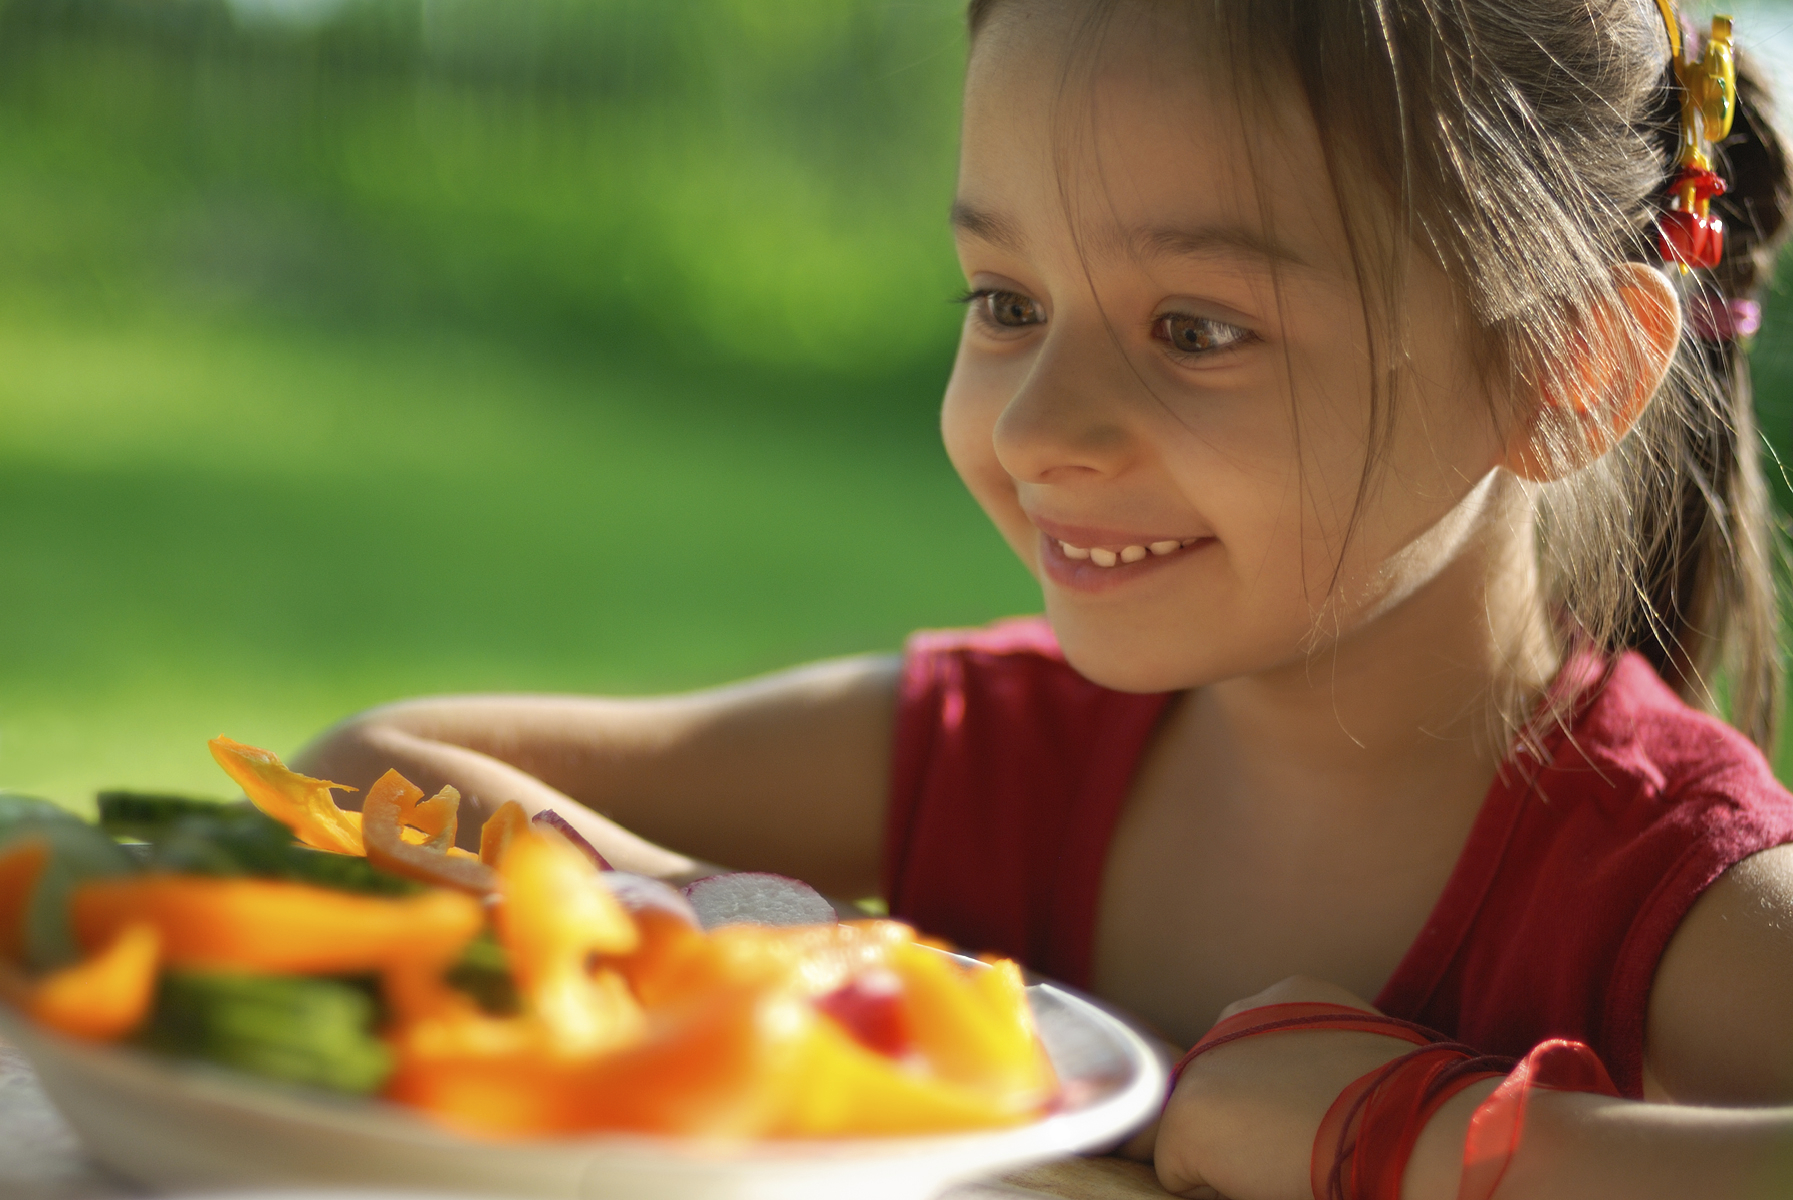 Teaching Kids To Cook May Make Them Eat Healthier